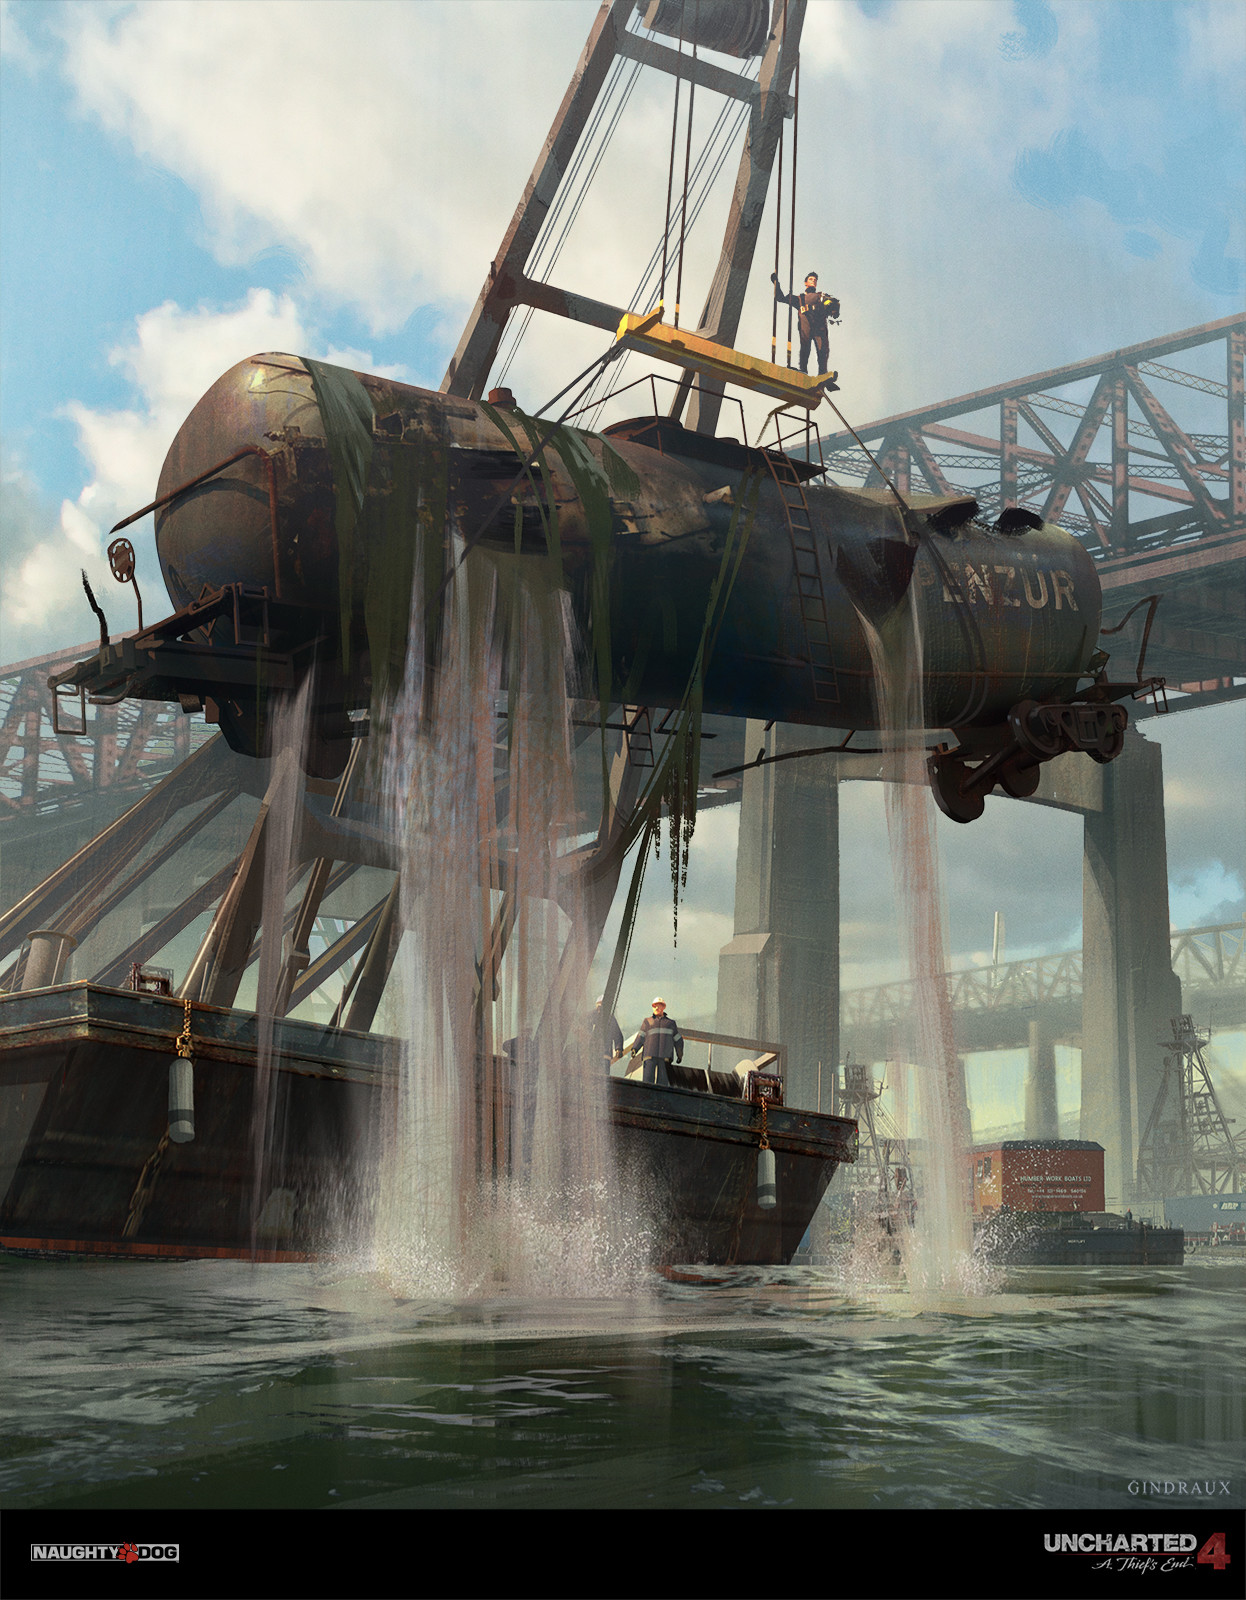 Uncharted Concept Art